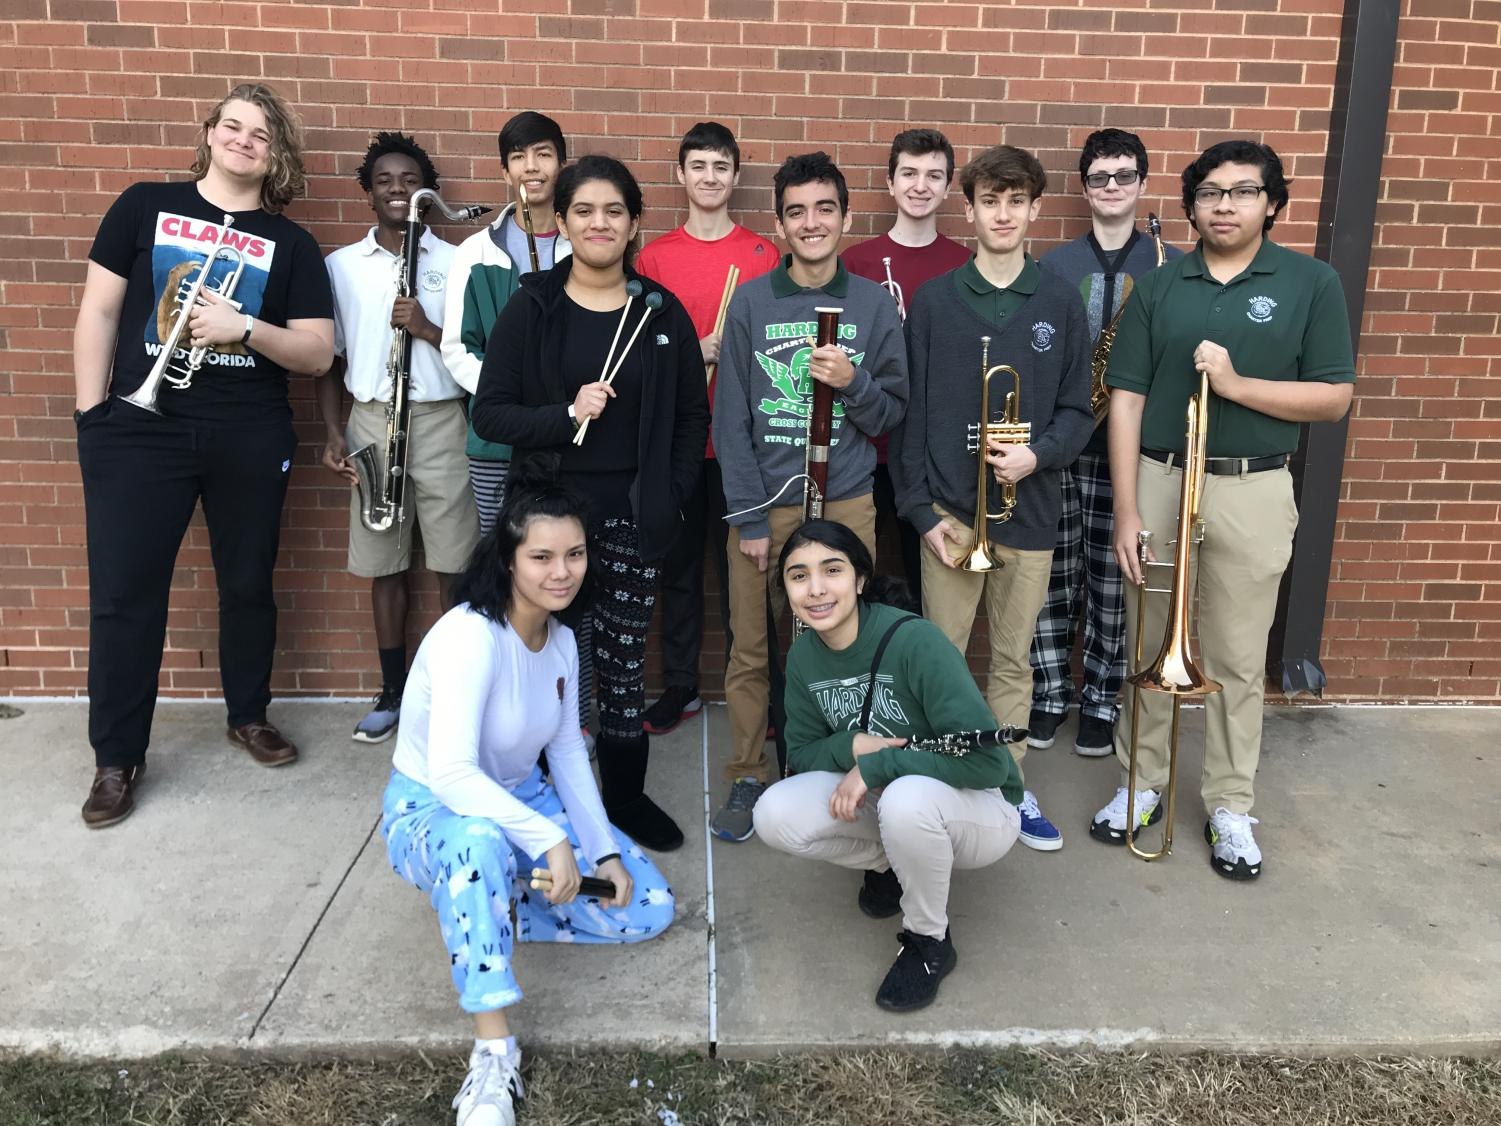 Front row: Reyna Sun and A.C. Uribe. Second row: Gwen Herrada, Ryan McLaughlin, August Biggs and Leonardo Moreno-Gordillo. Back row: Gage Catteeuw, Malachai Canty, Eduardo Benitez-Mejia, Sean Carr, Michael LaSala and Ashton West. These students all earned spots in the All City Honor Band in mid-November.